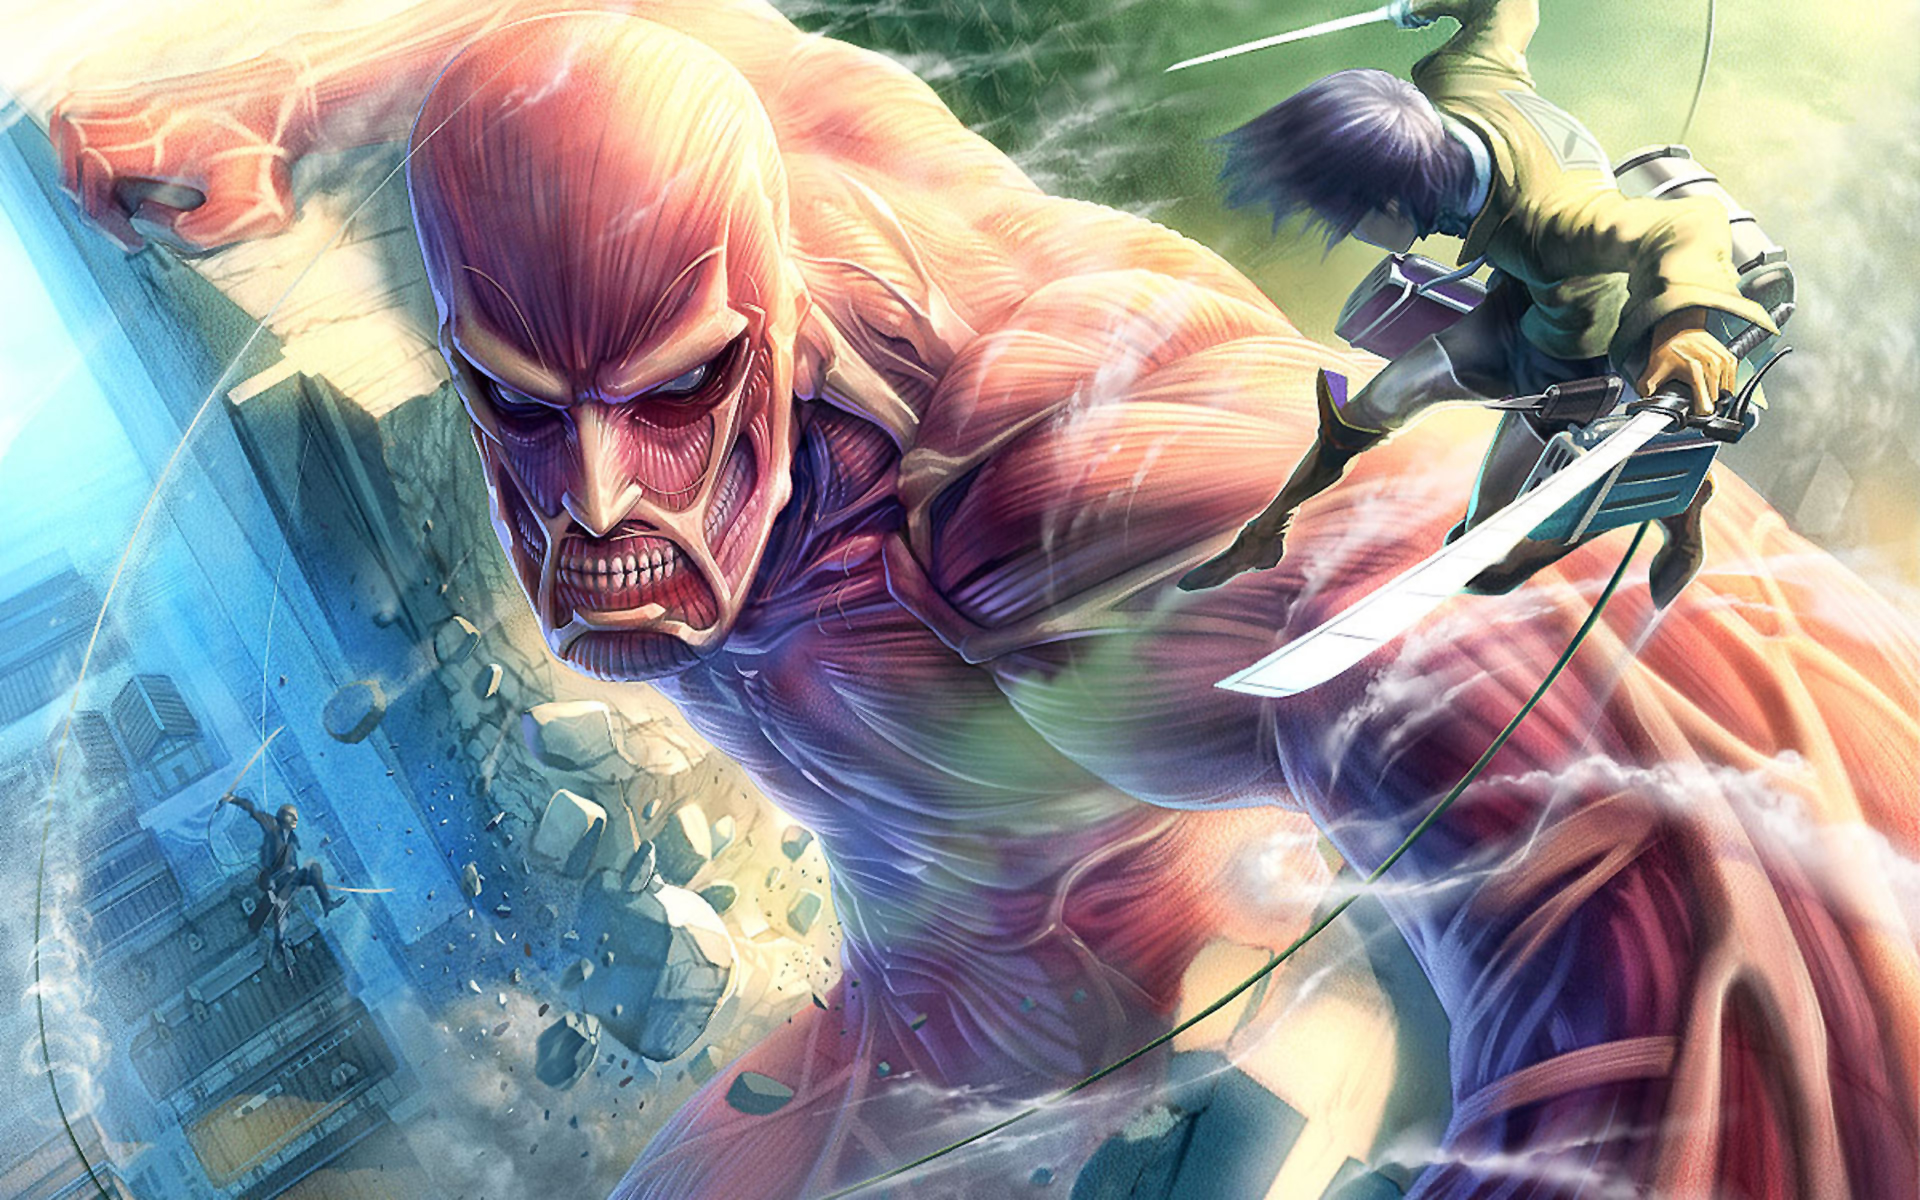 Shingeki no kyojin wallpapers high quality download free - High quality anime pictures ...